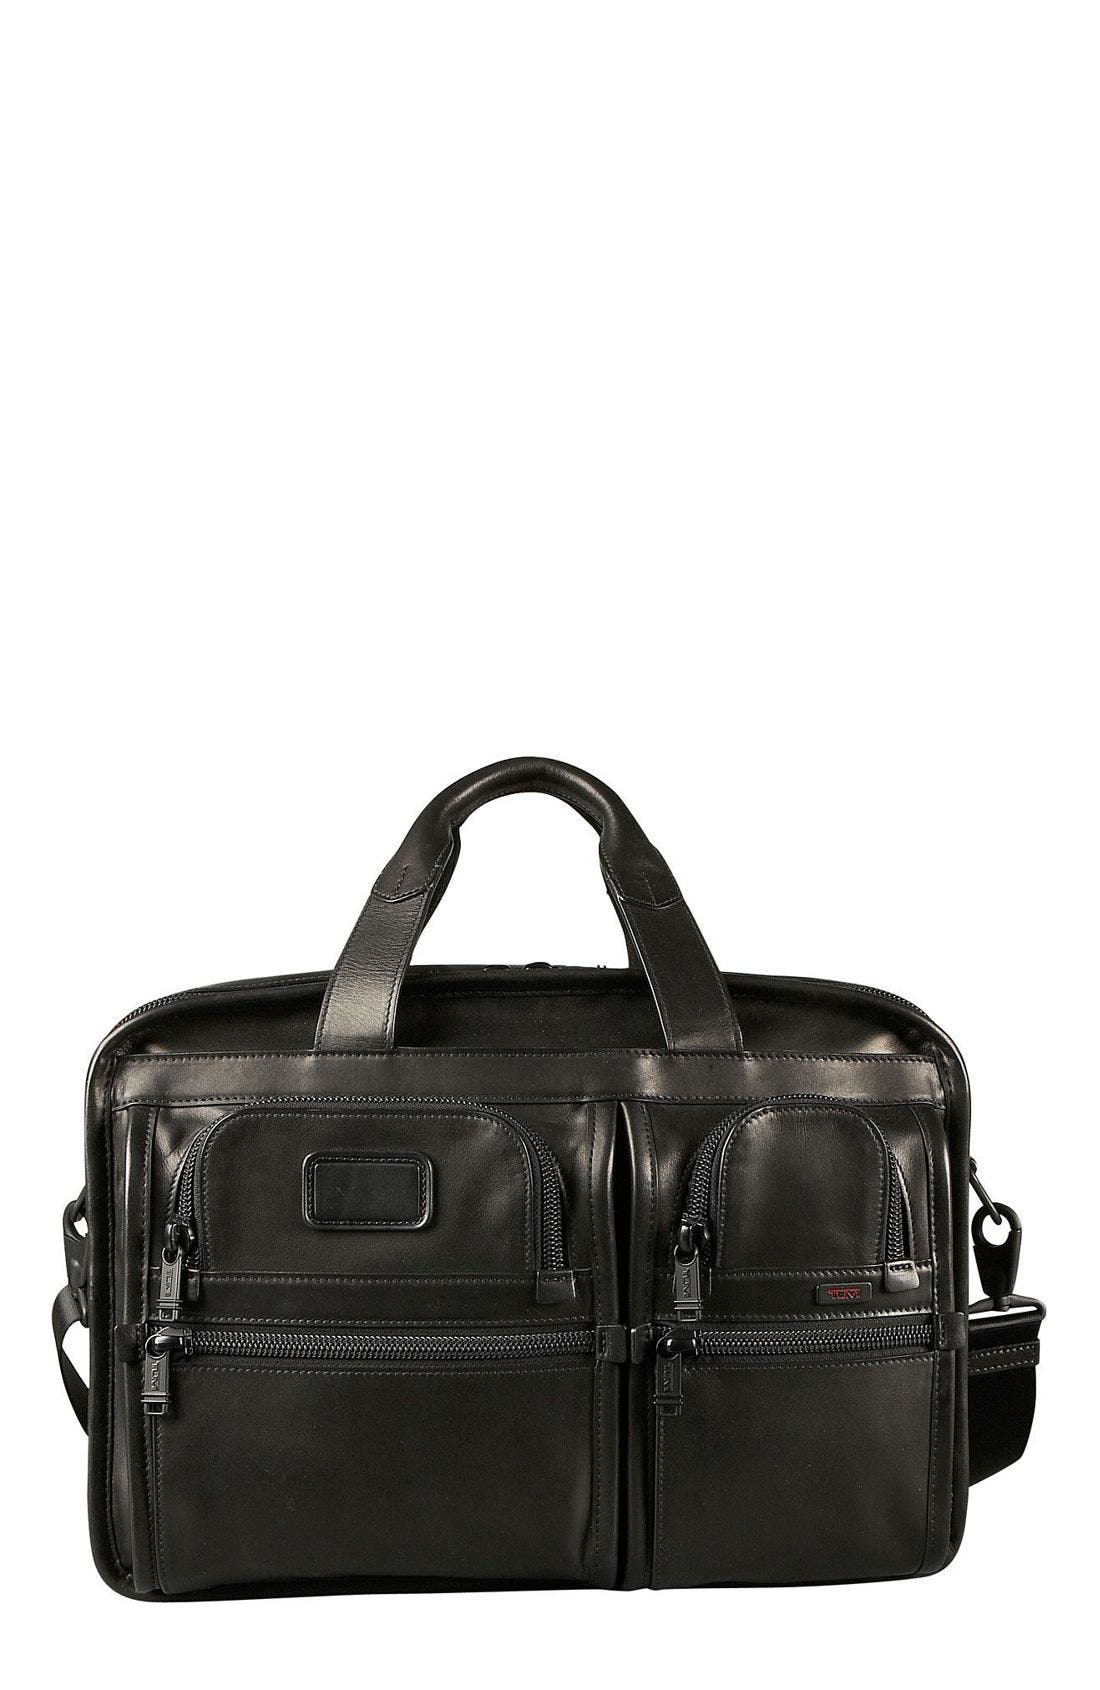 Alternate Image 1 Selected - Tumi 'Alpha' Expandable Organizer Leather Computer Briefcase